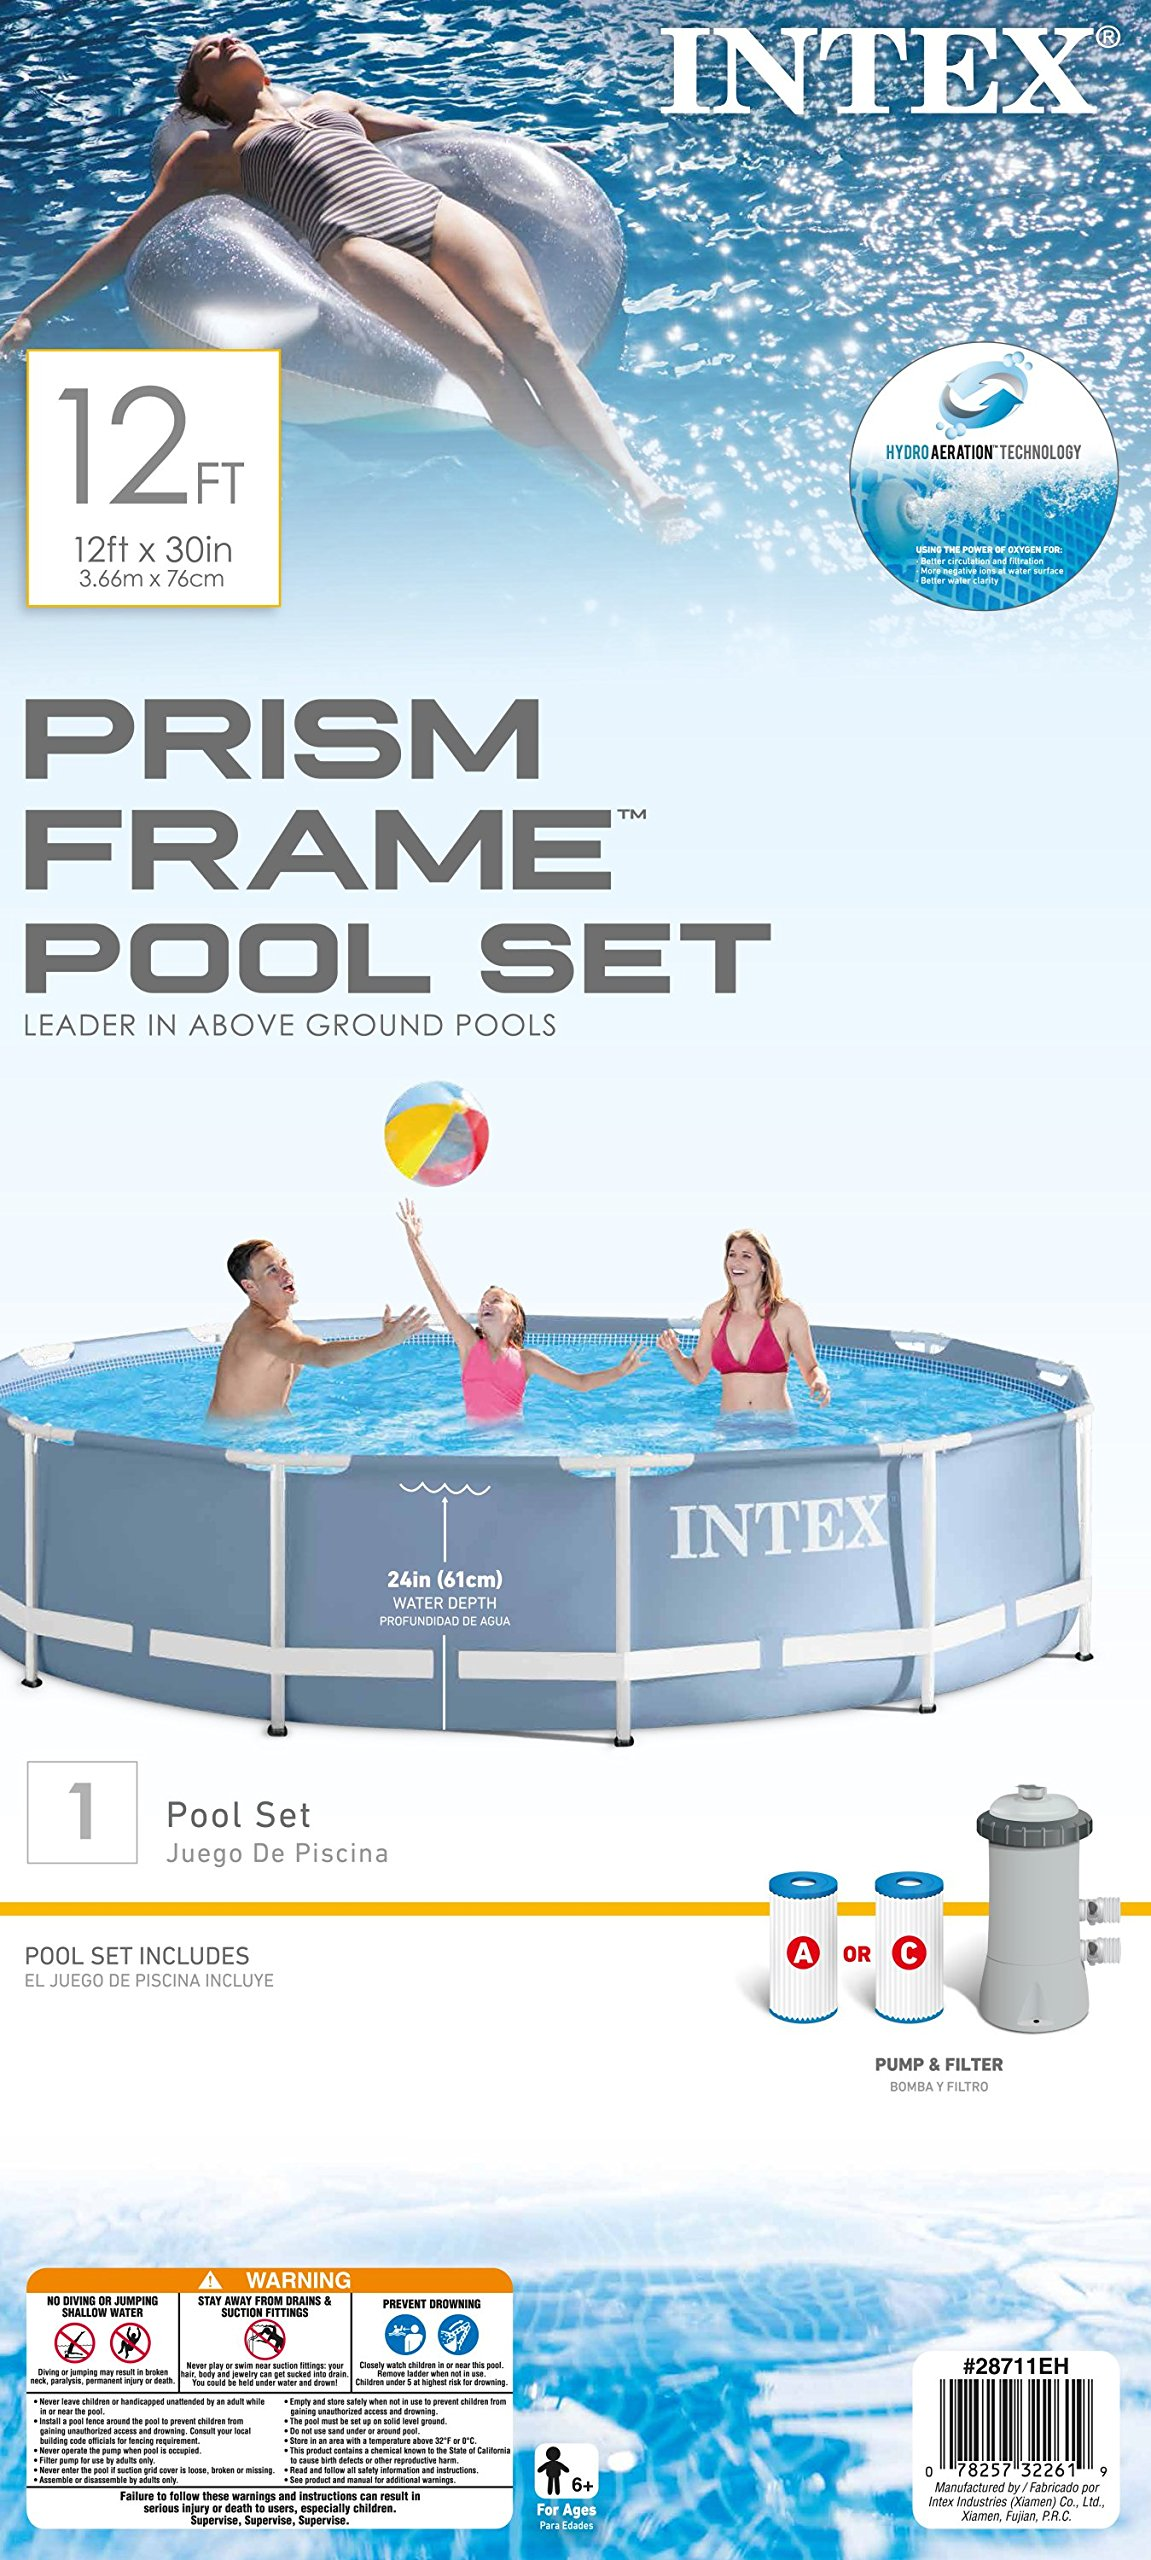 Intex 12ft X 30in Prism Frame Pool Set with Filter Pump by INTEX (Image #5)